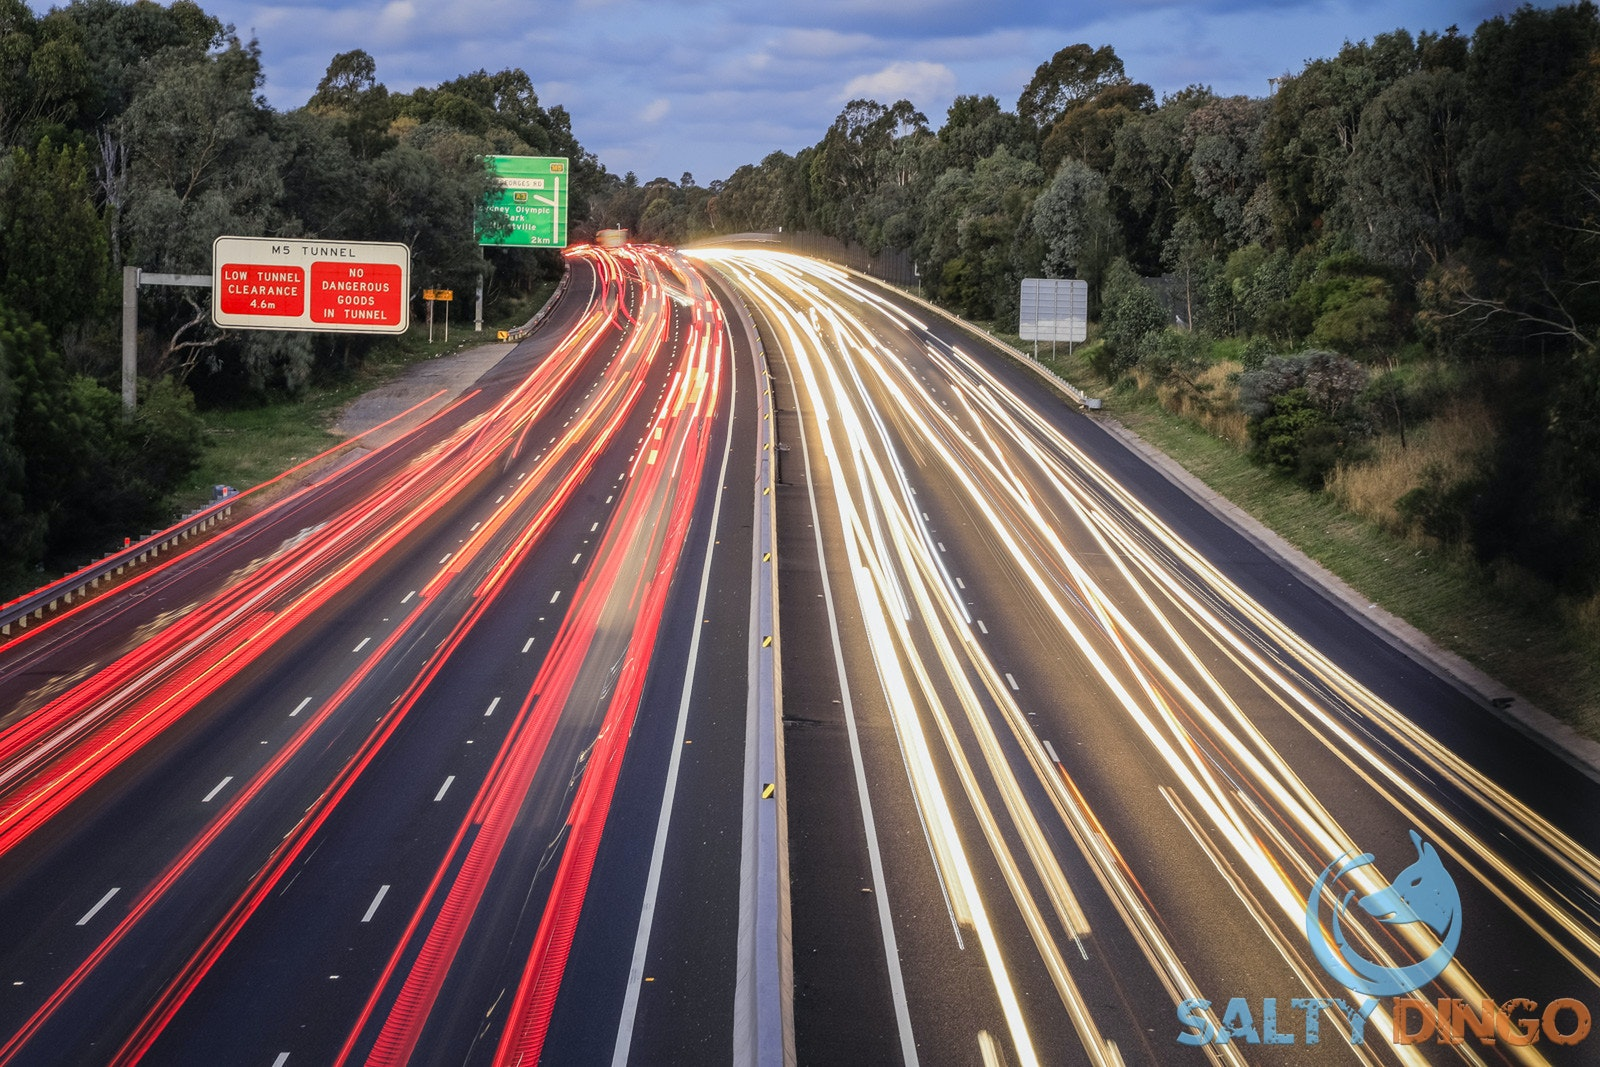 M5 Motorway OSL DPE © Salty Dingo 2017-6289 - OSL DEP photographic project. © Salty Dingo 2017